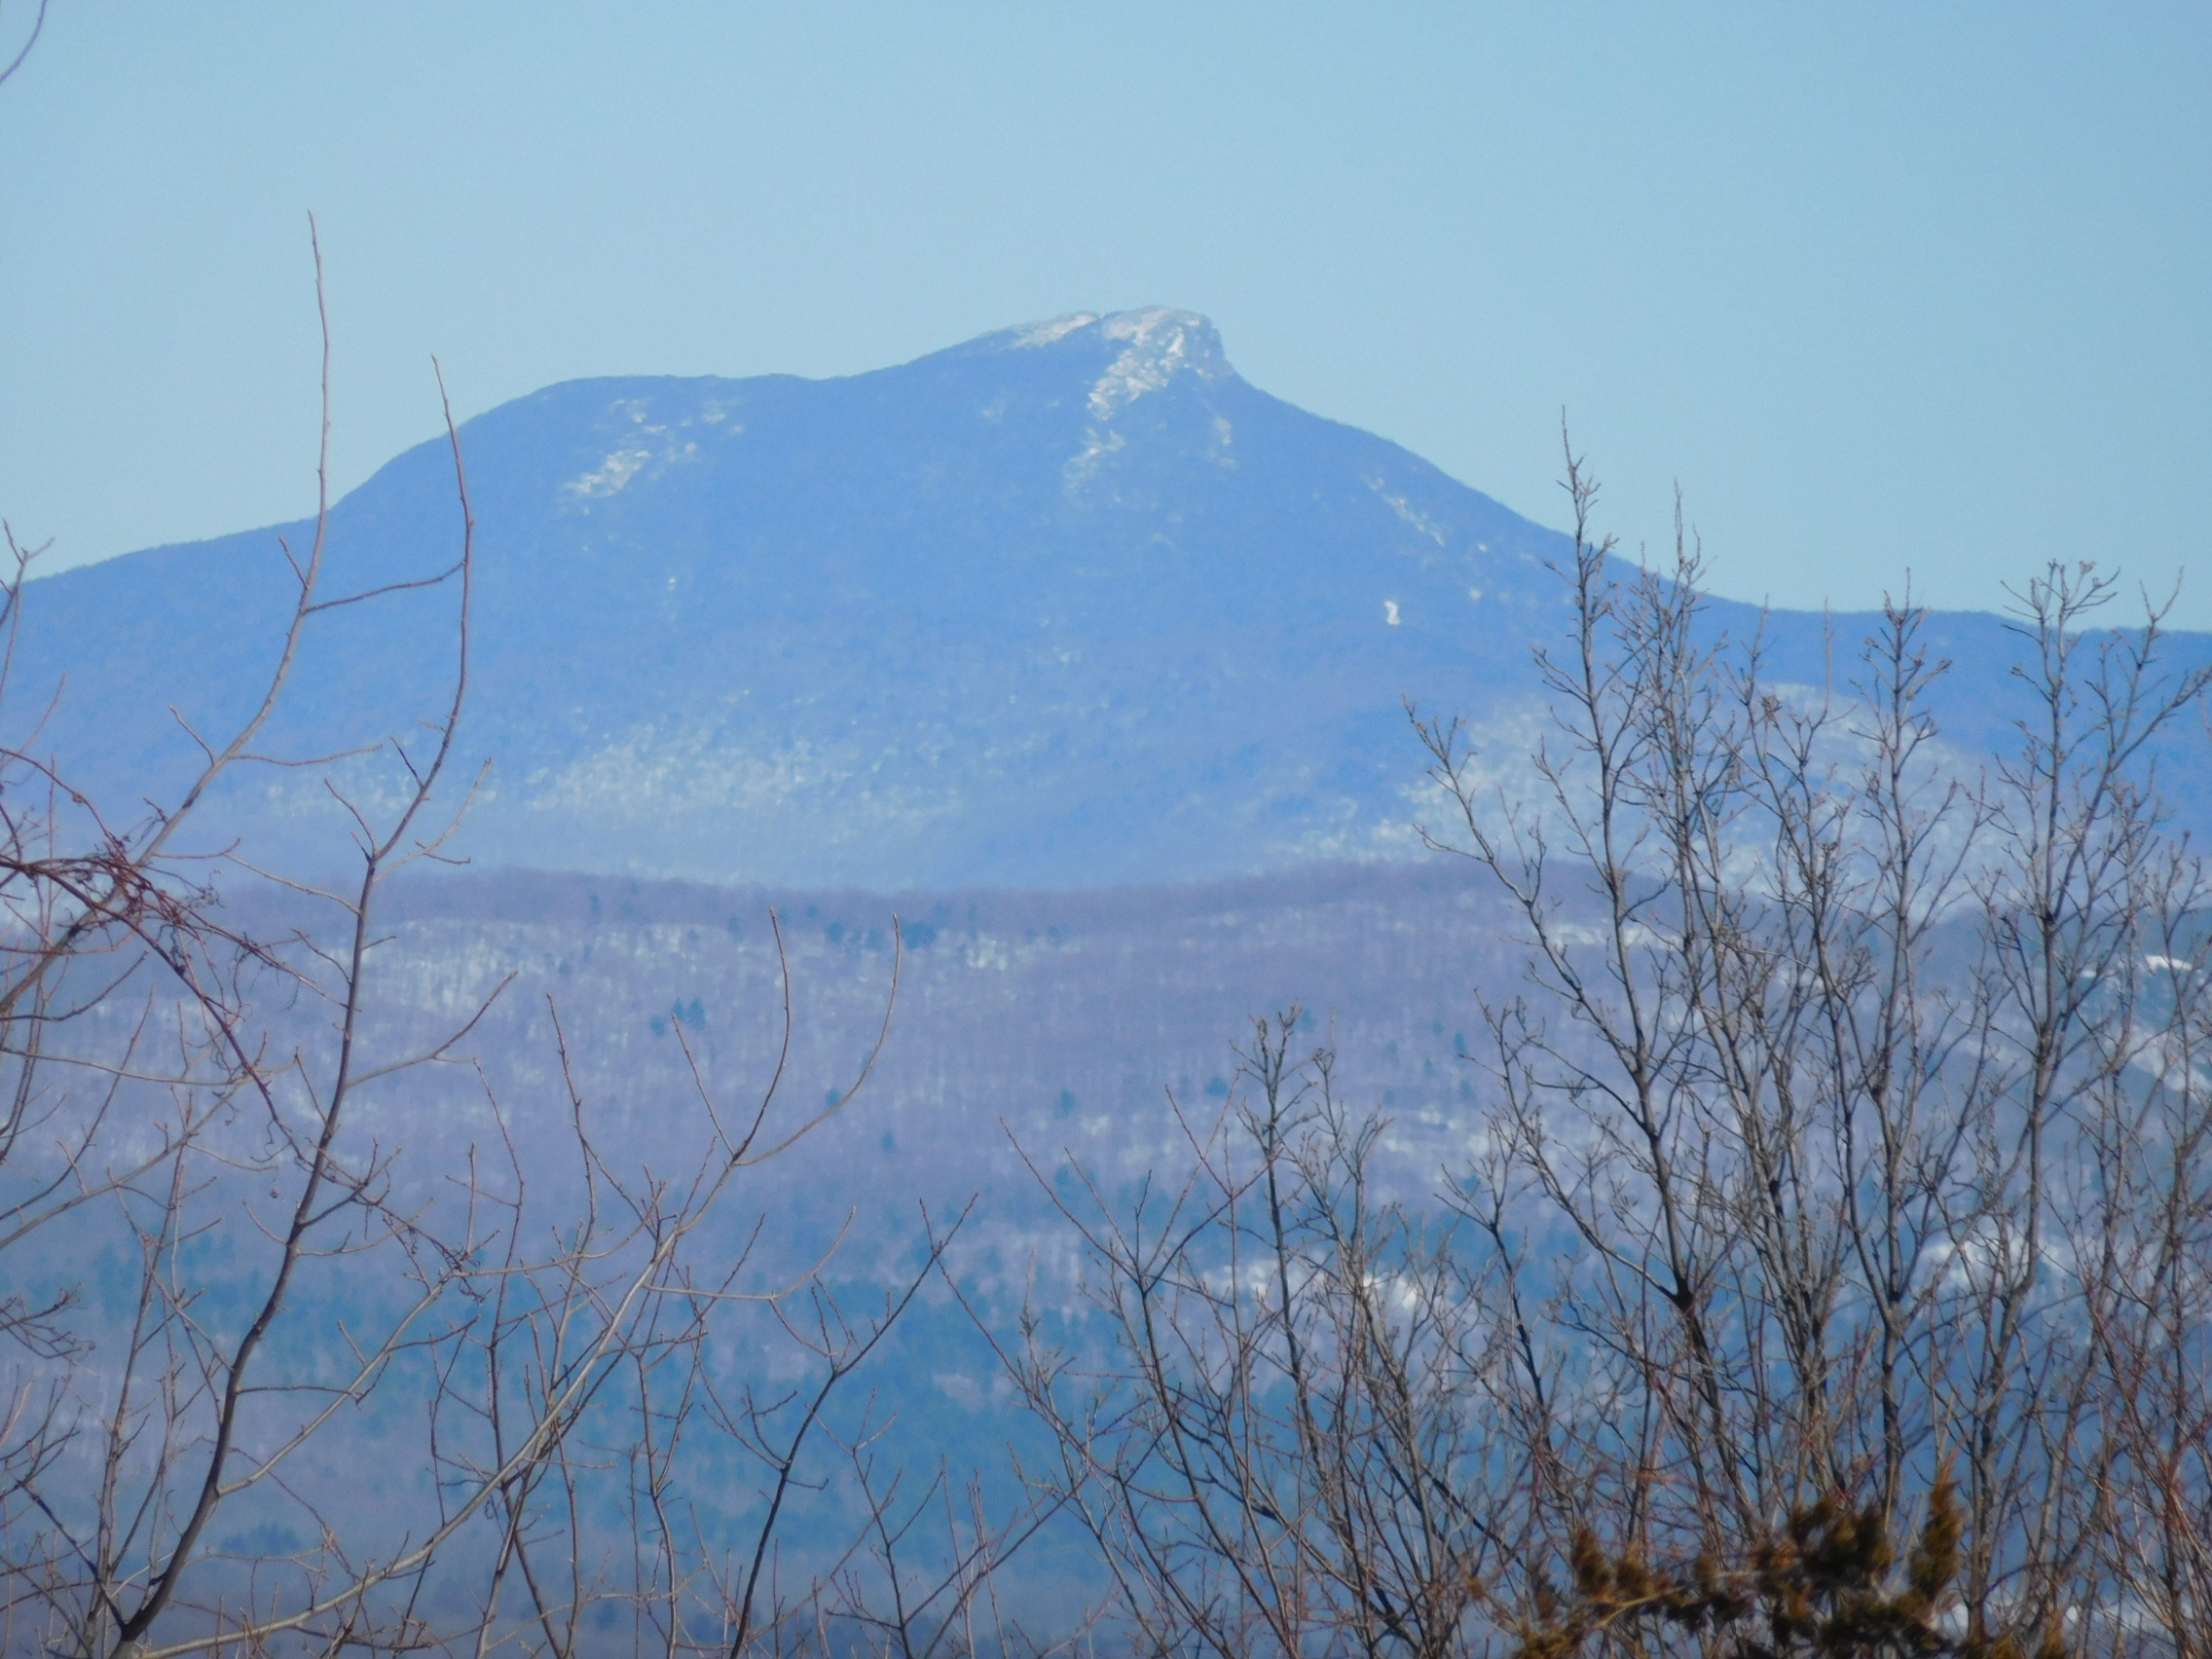 Camels Hump from Mt. Philo